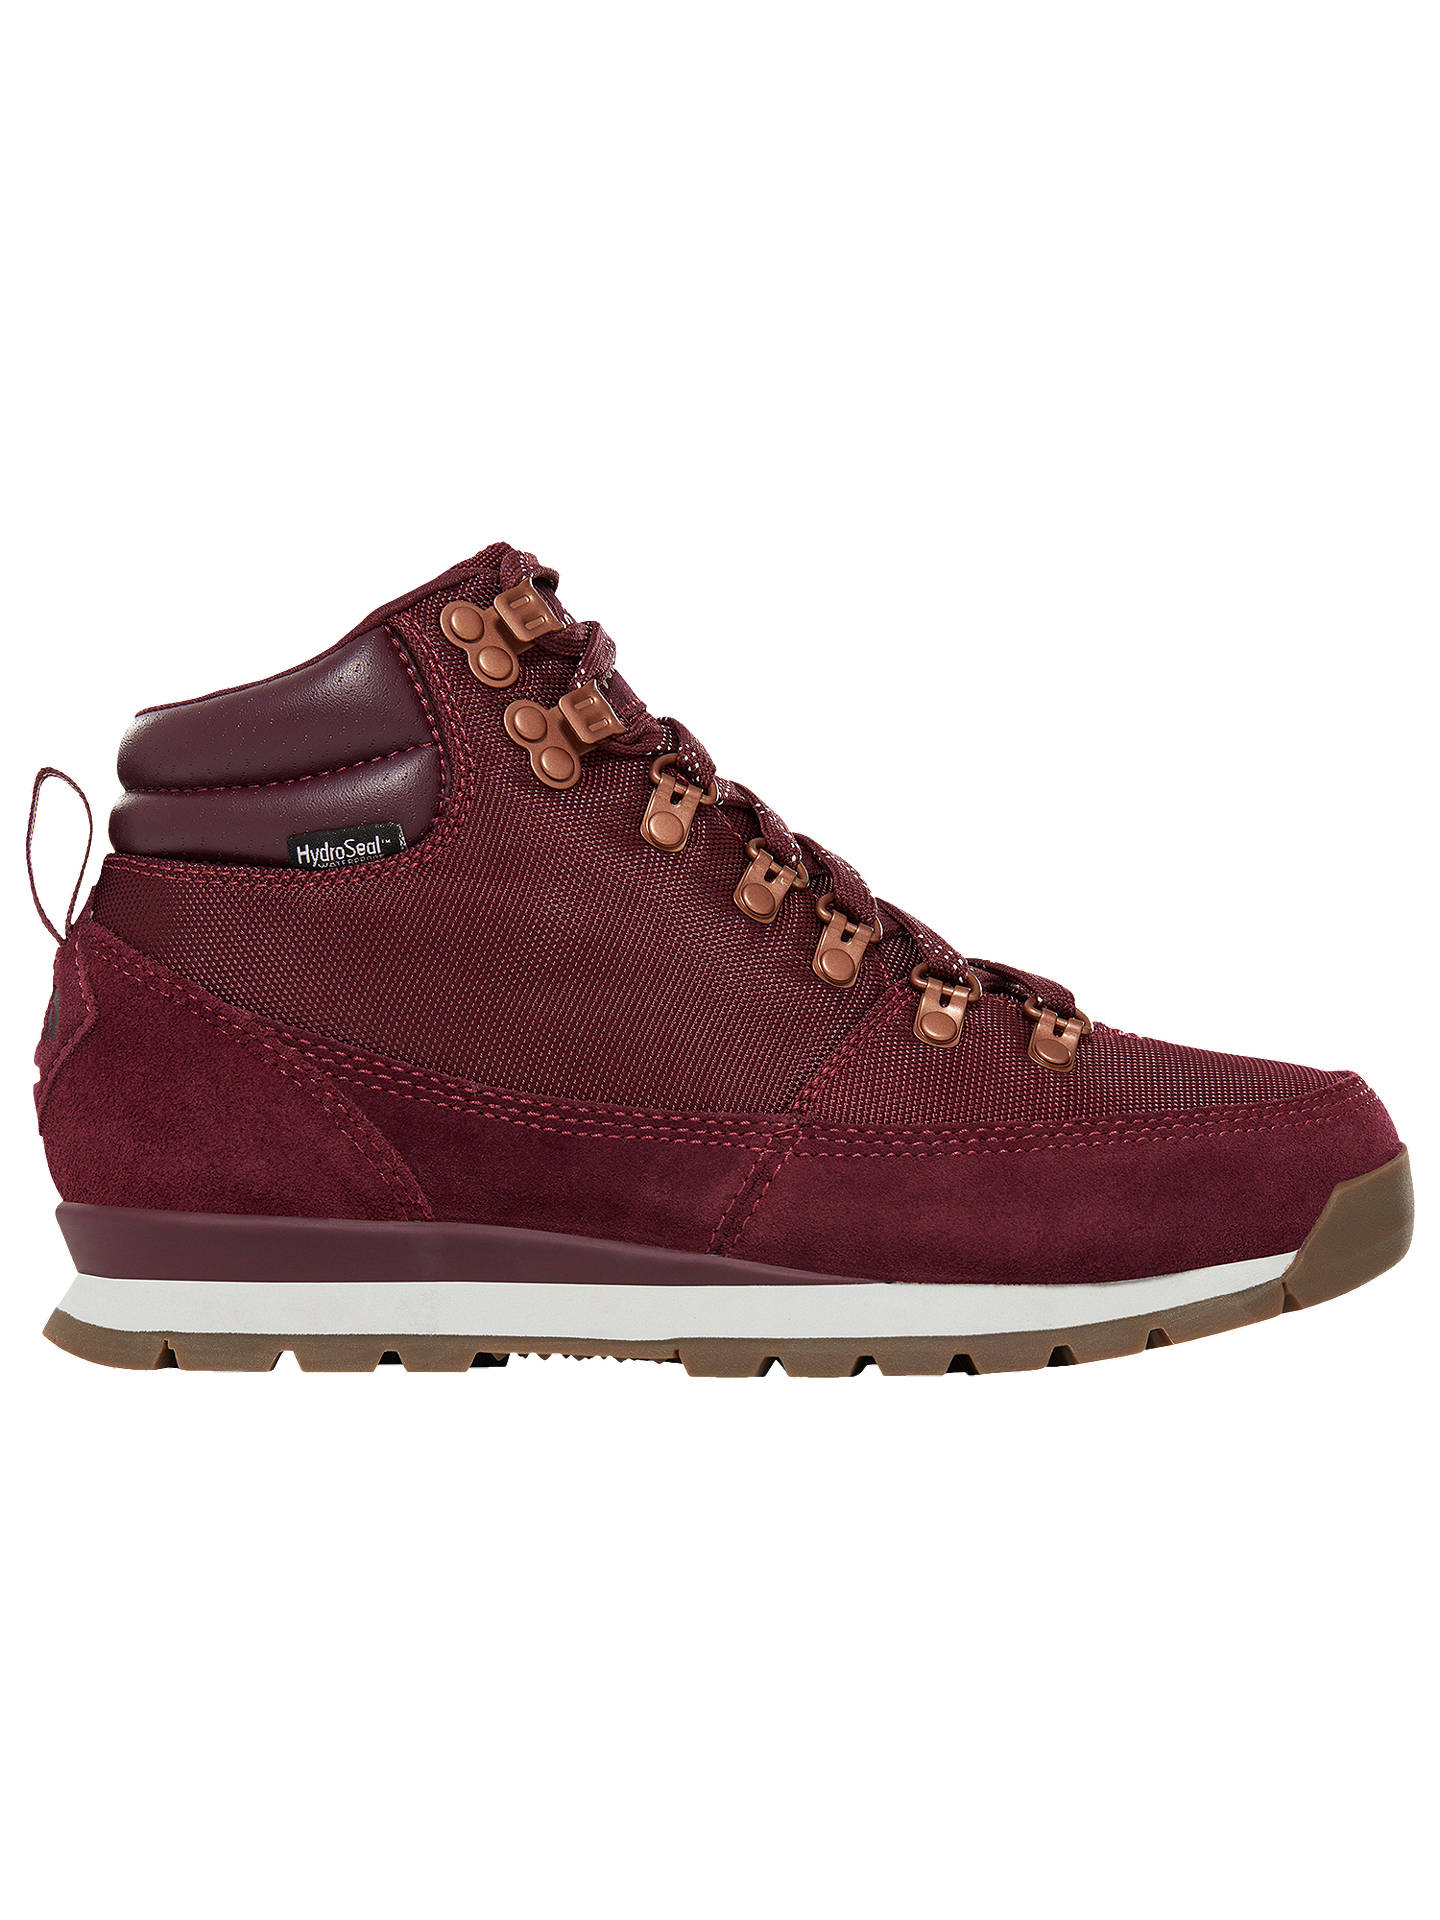 Buy The North Face Back to Berkeley Redux Women's Walking Shoes, Fig, 6 Online at johnlewis.com